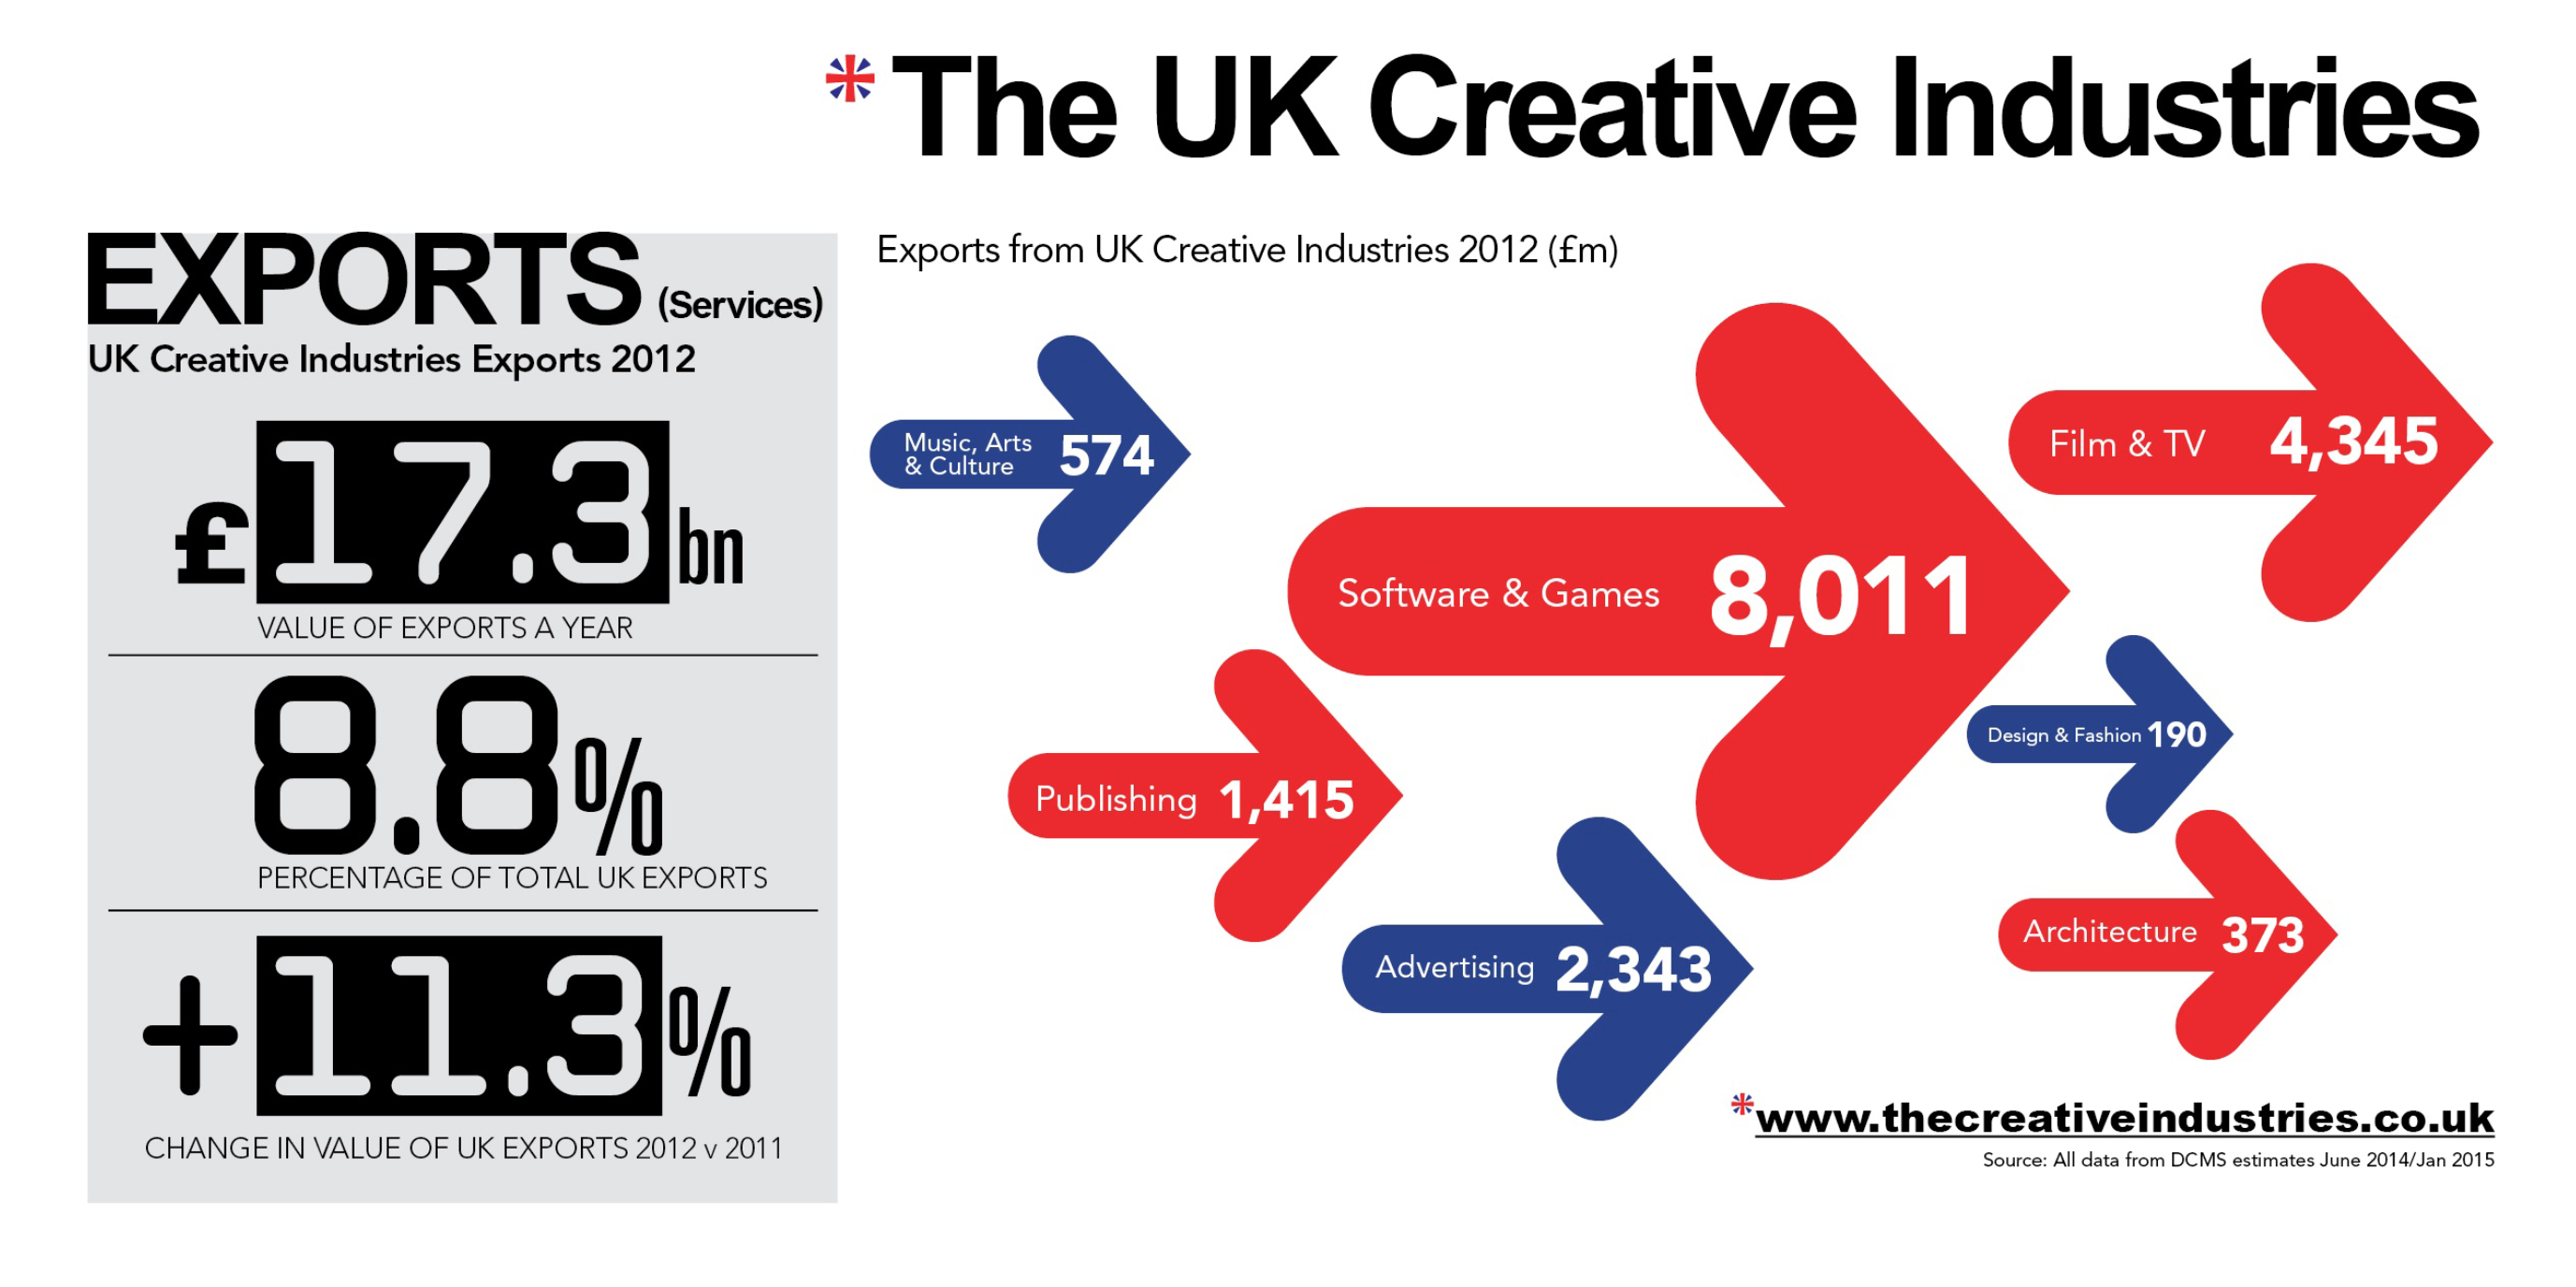 UK Creative Industries Exports